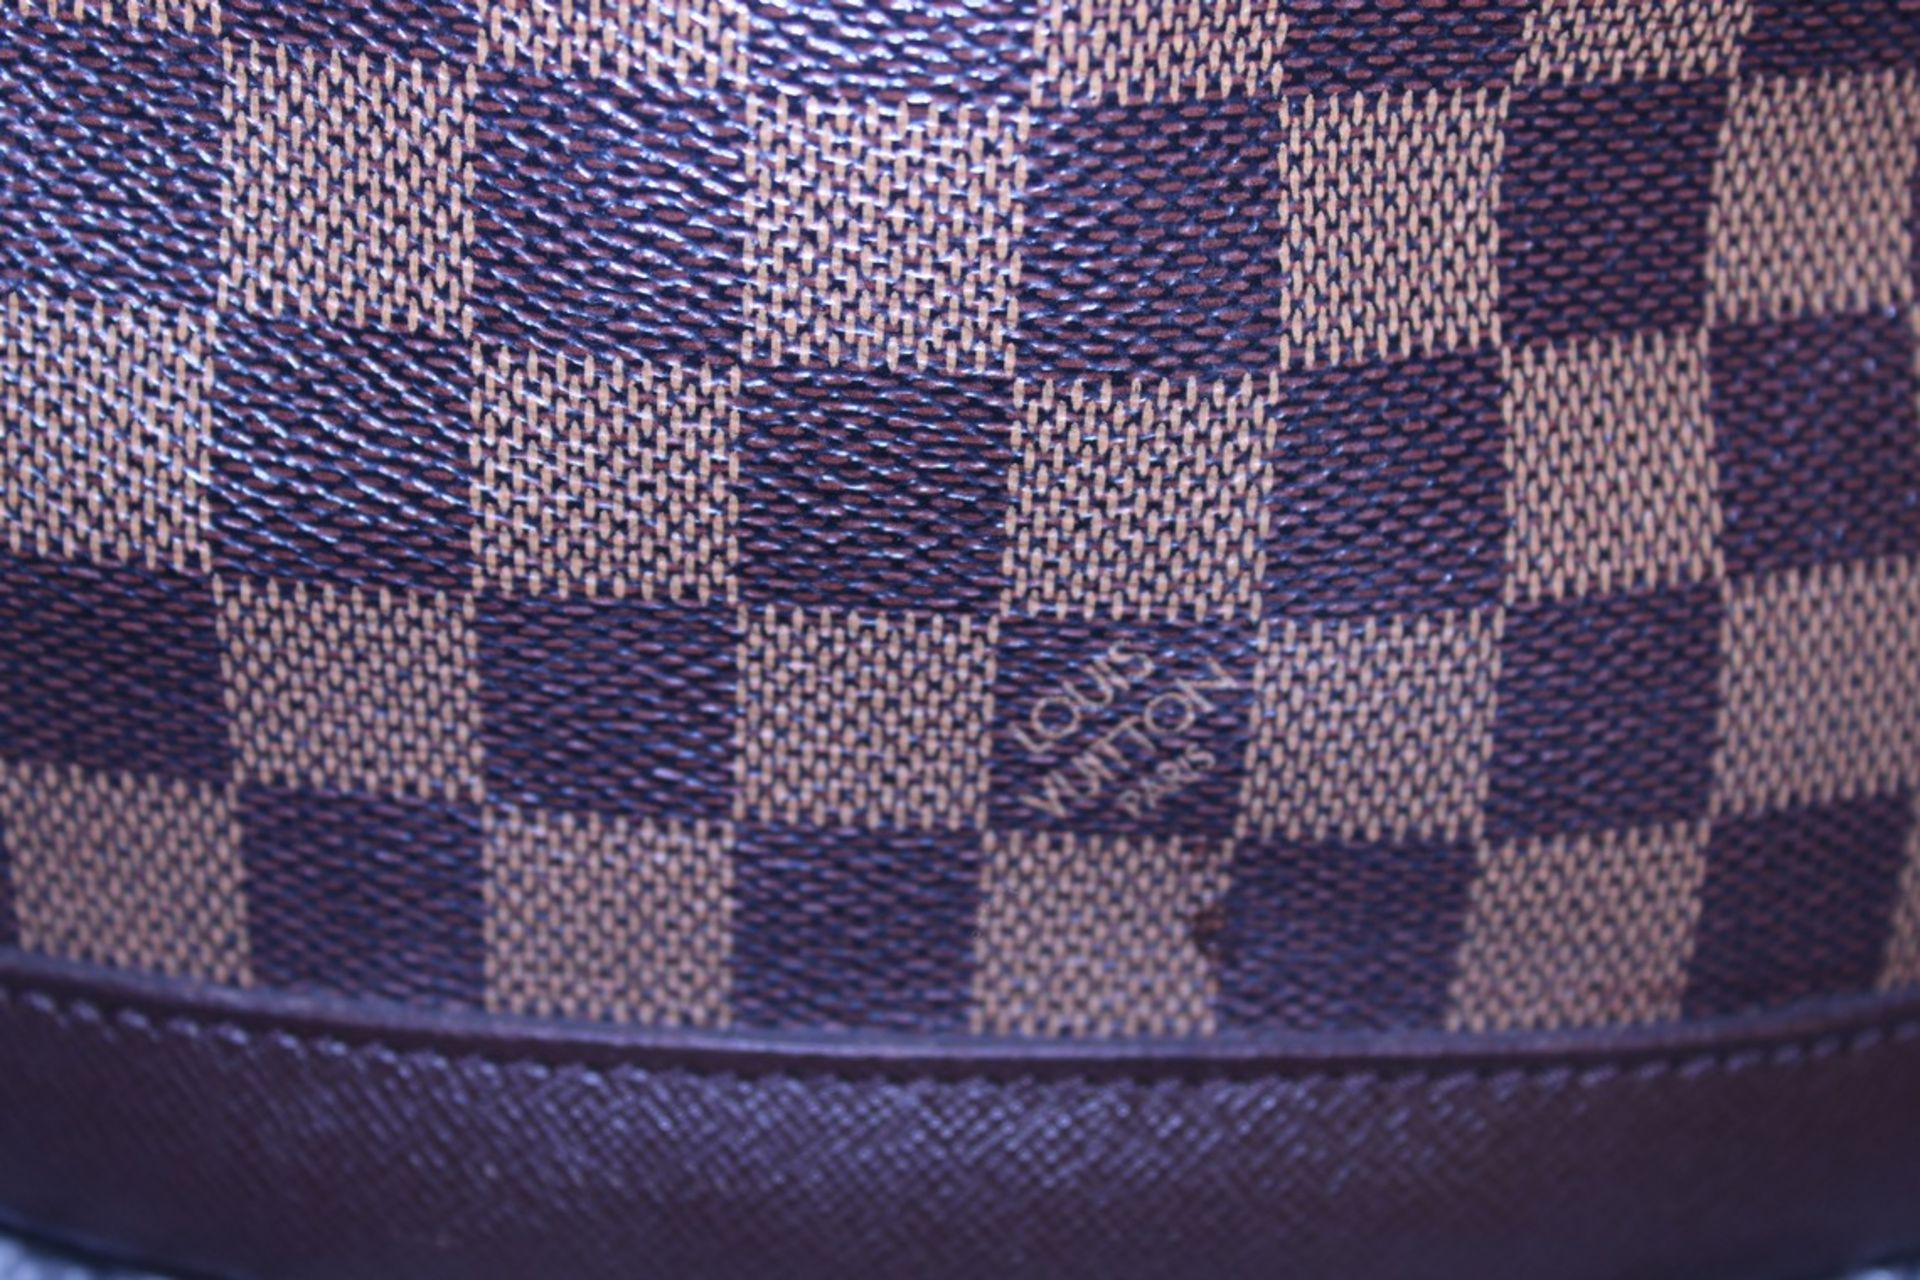 RRP £1,200 Louis Vuitton Marais Handbag, Brown Coated Canvas 23X24X16Cm (Production Code Sp0013) - Image 3 of 5